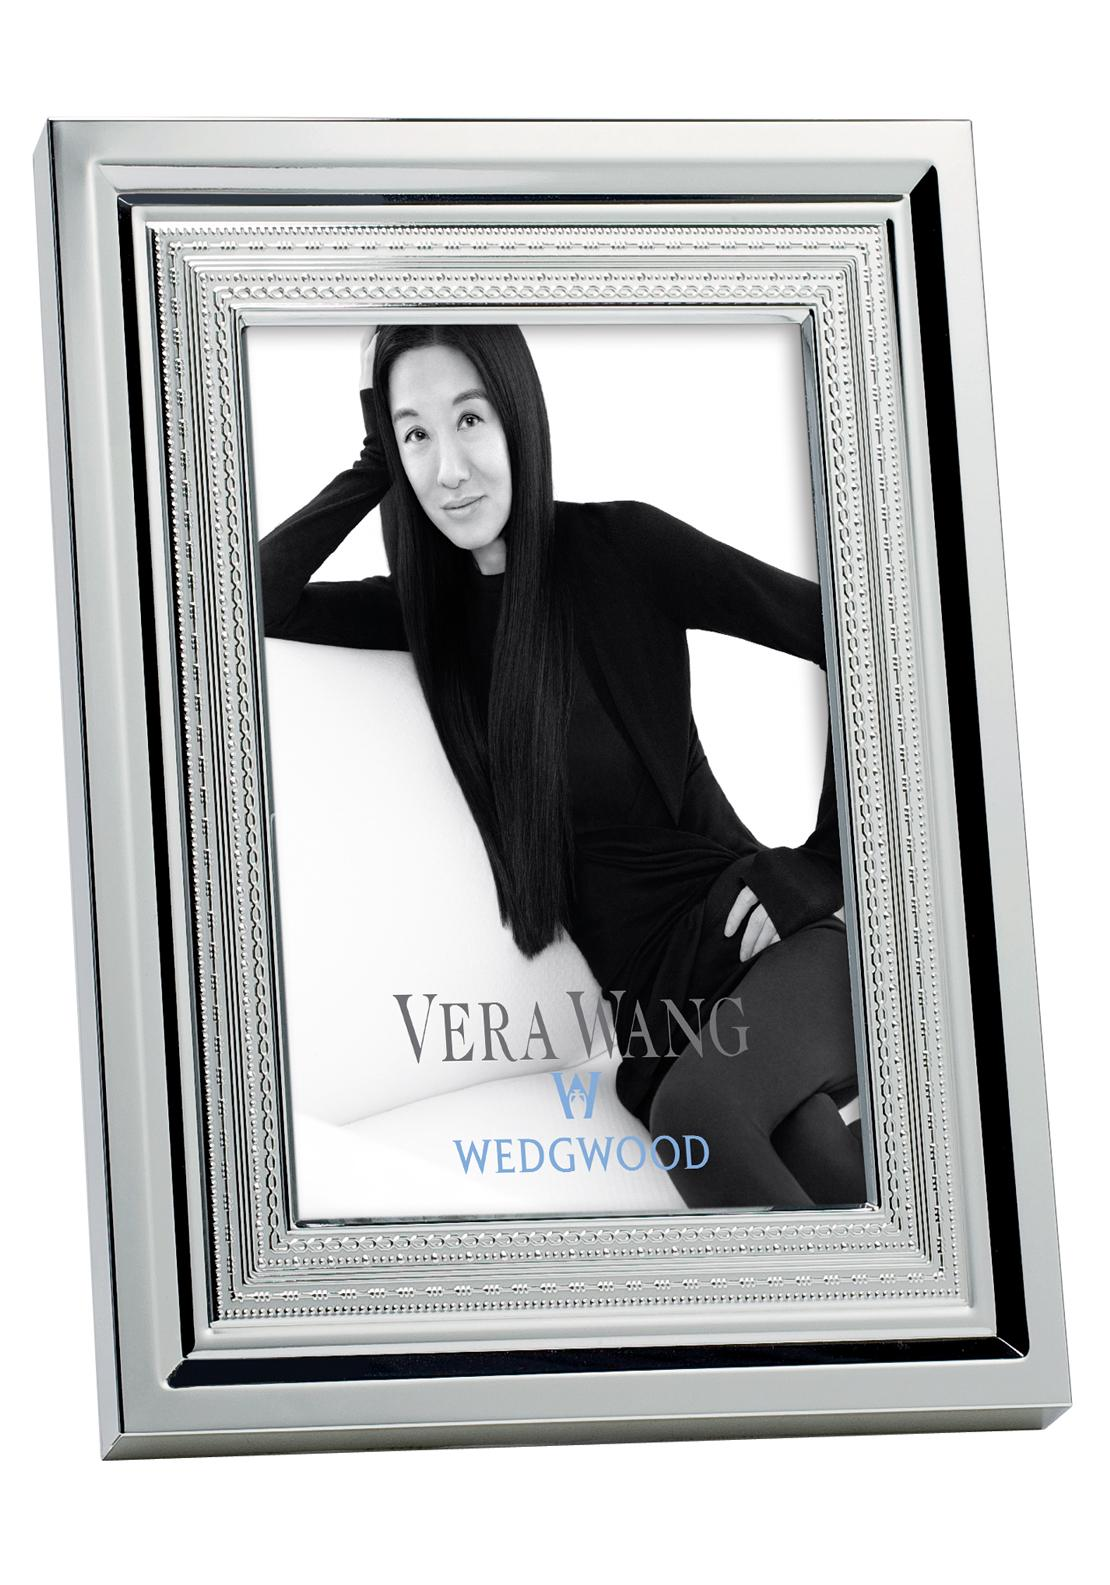 Vera Wang Wedgwood With Love Photo Frame, 5in x 7in